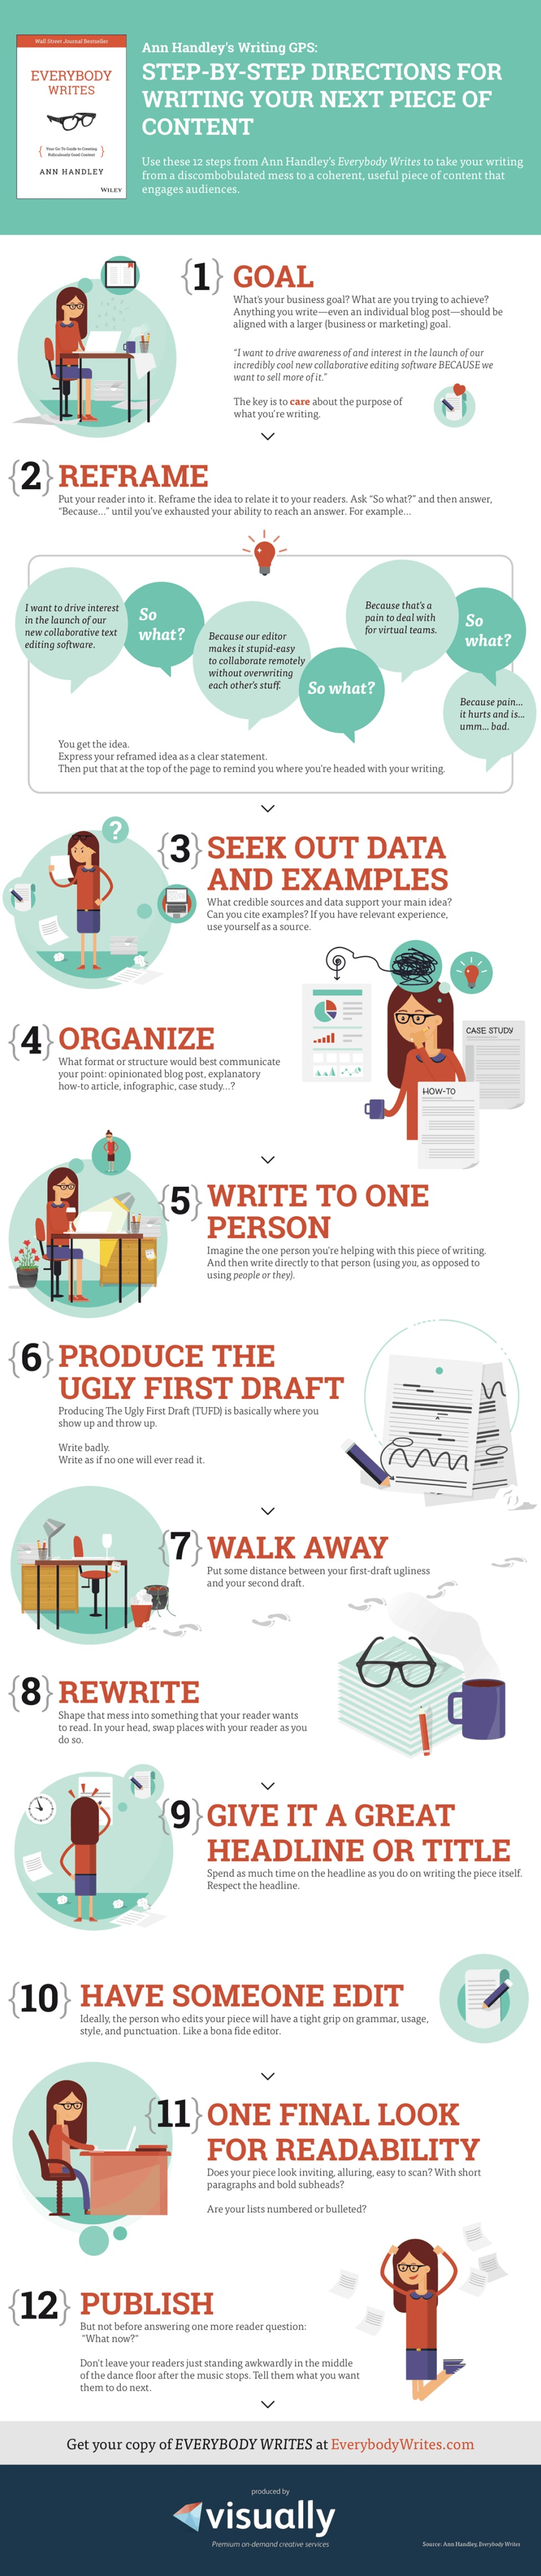 Twelve proven ways to become a better writer #infographic